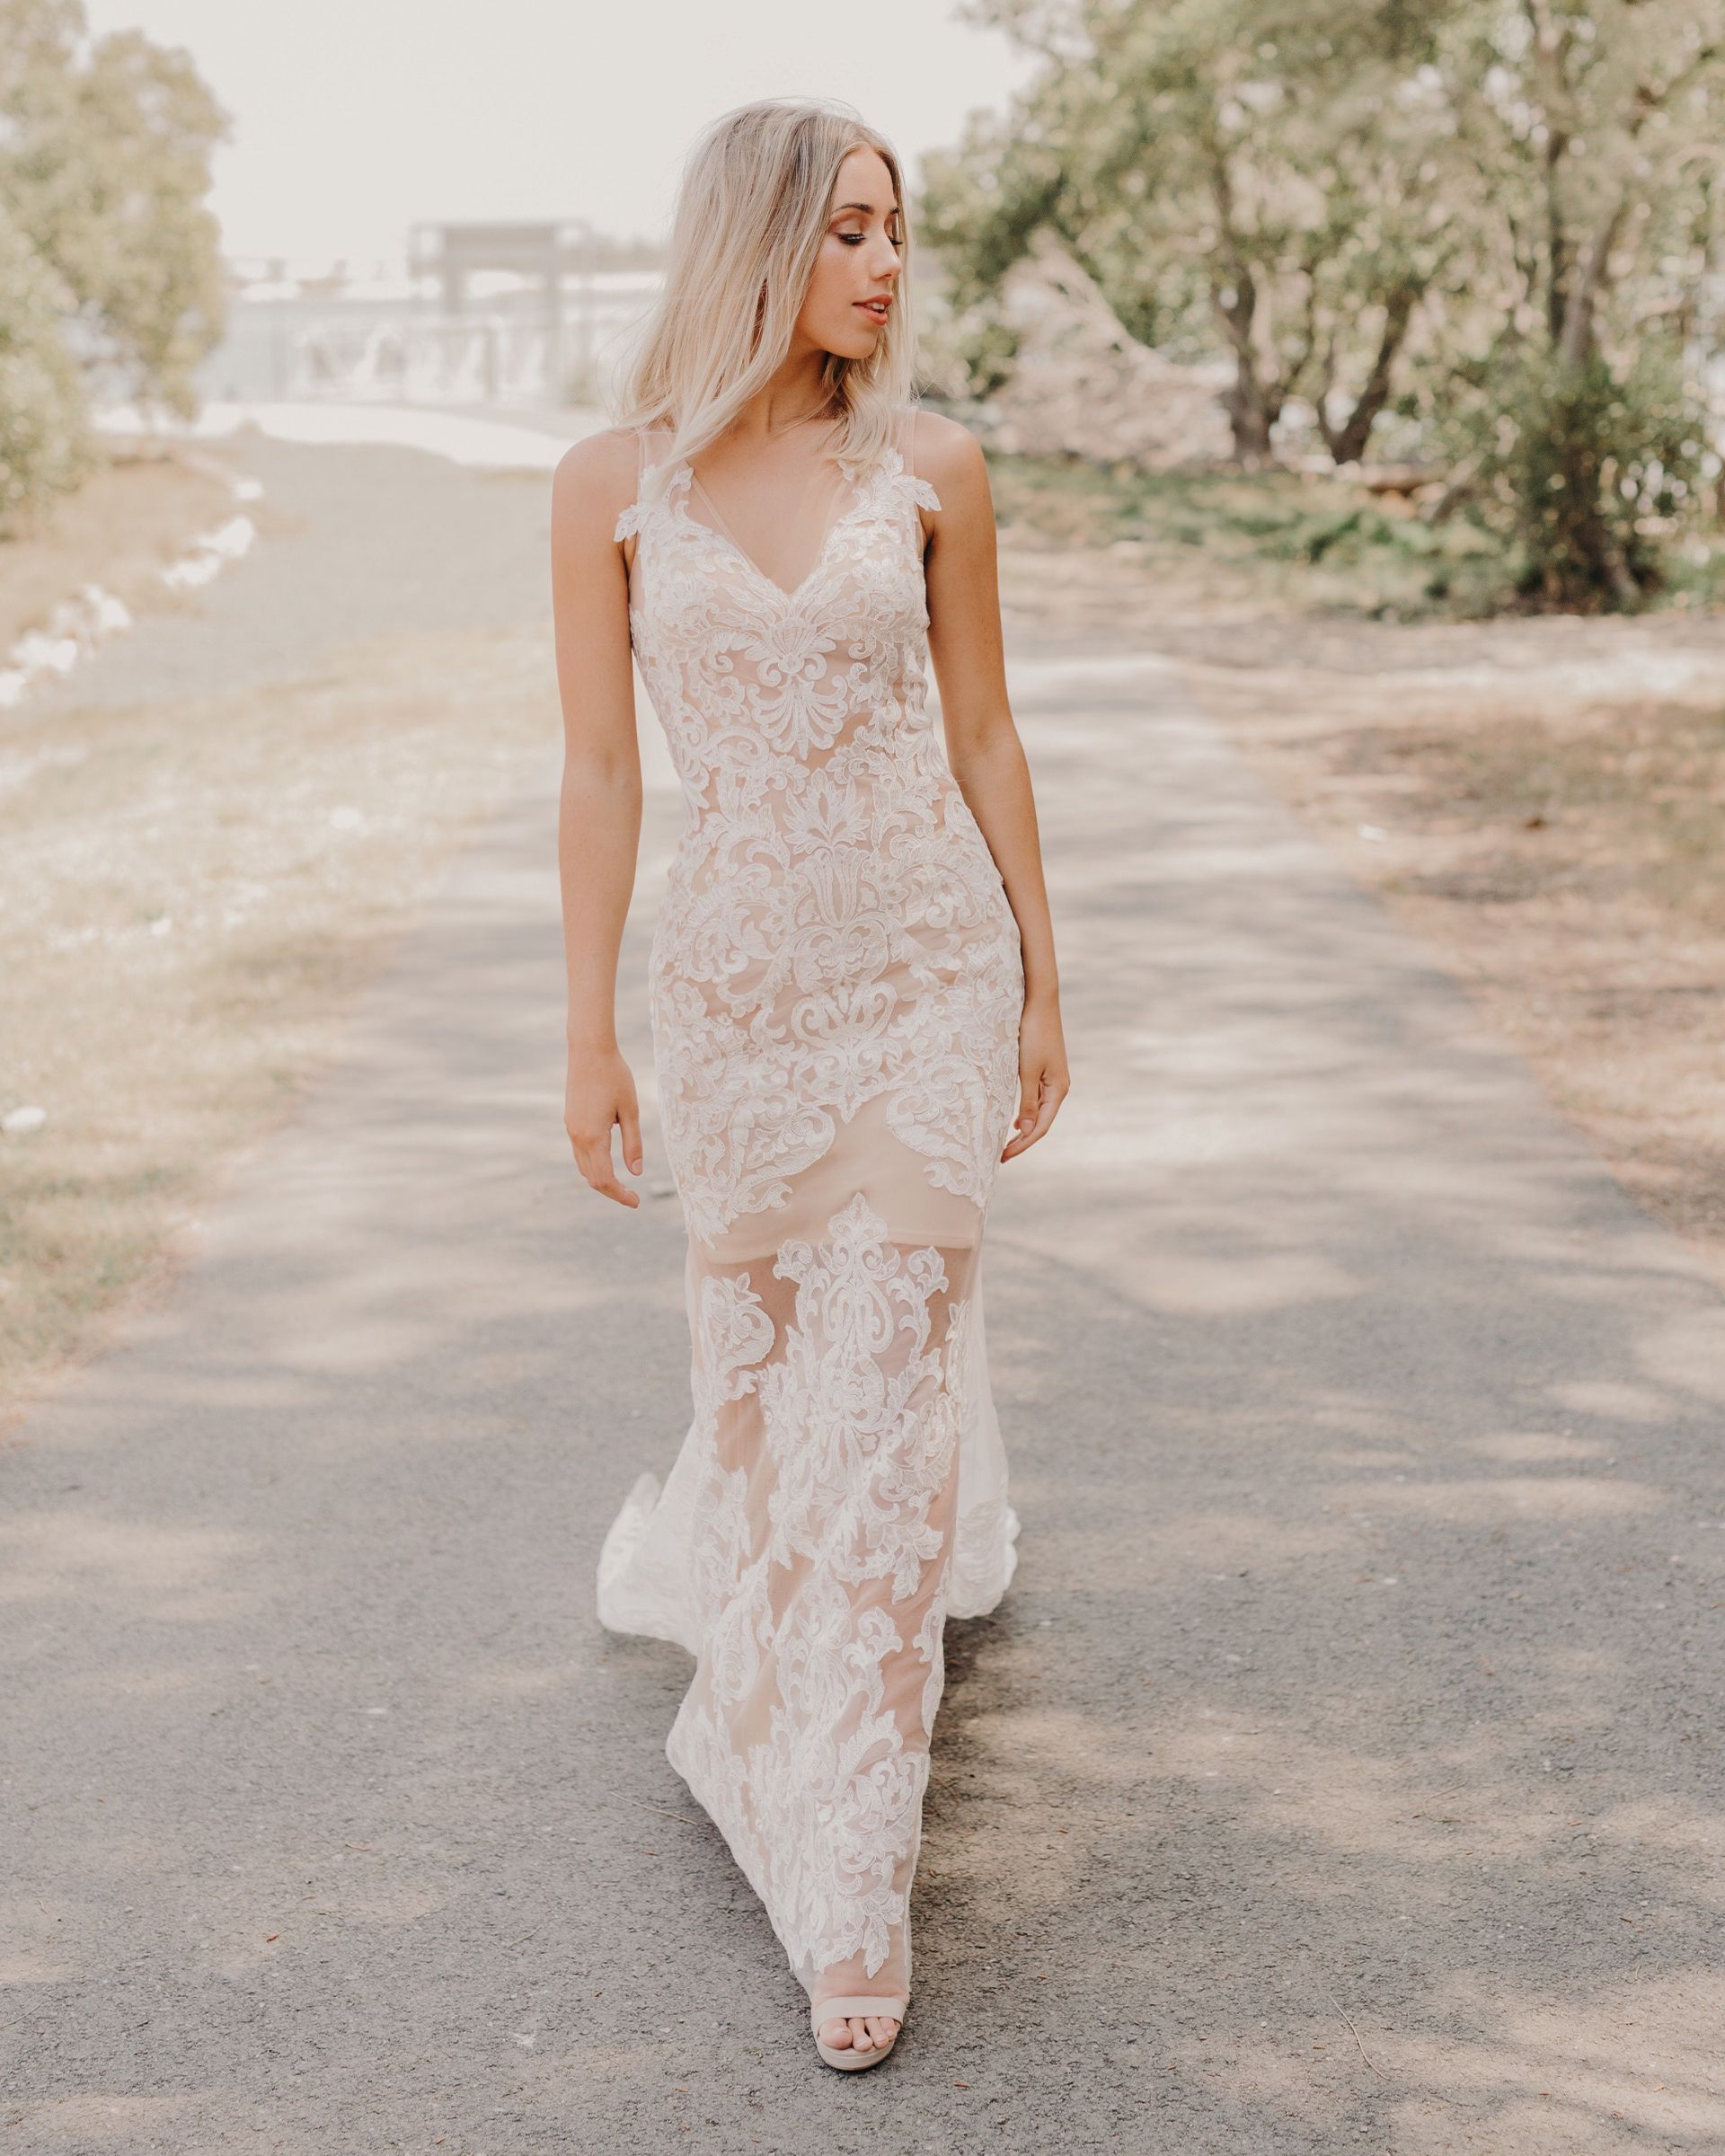 Romona keveza lace wedding dress october 2018 Tamia Bridal Gown Exclusive Luxe Collection  Wedding  Pinterest